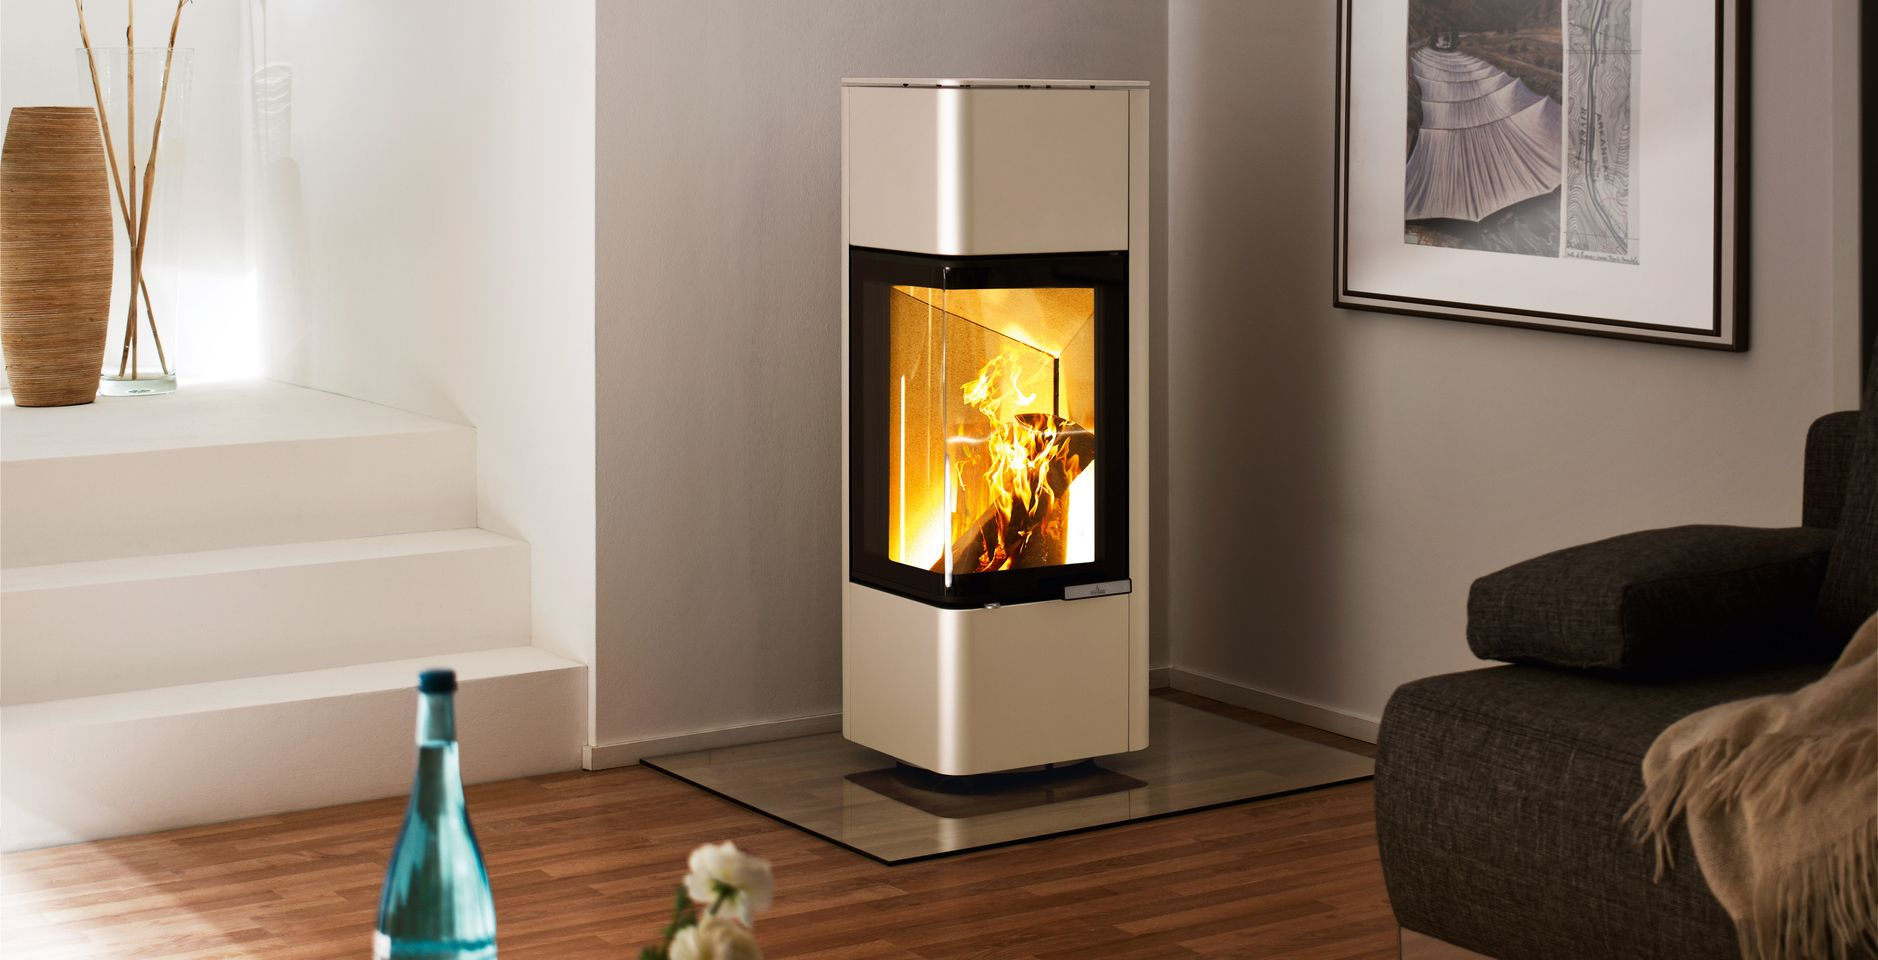 spartherm feuerungstechnik stoves stove cube s byt flat